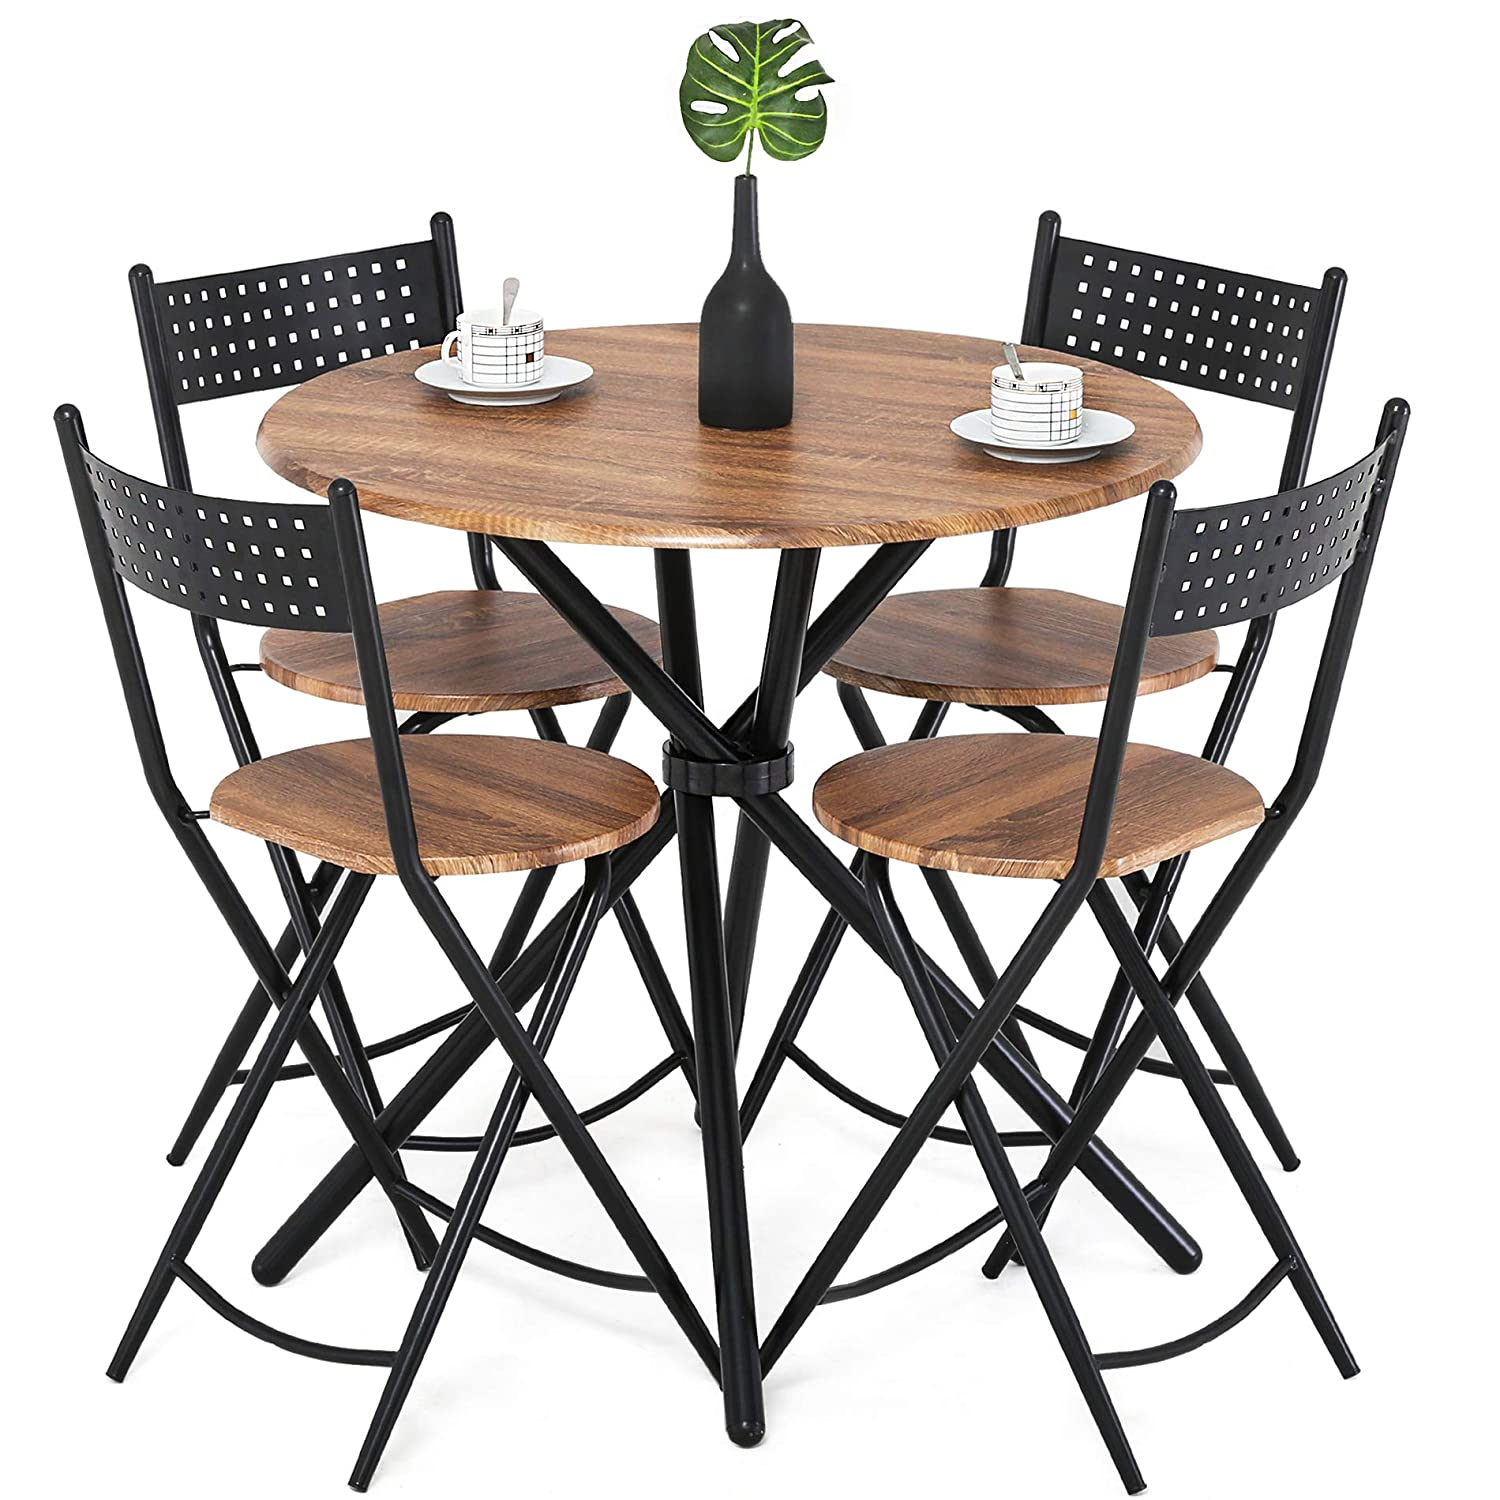 Homury 5pcs Dining Table Set Kitchen Table Kitchen Furniture Round Dining  Table with 4 Round Dining Chair Dining Set Wood Coffee Table Set Home  Office ...